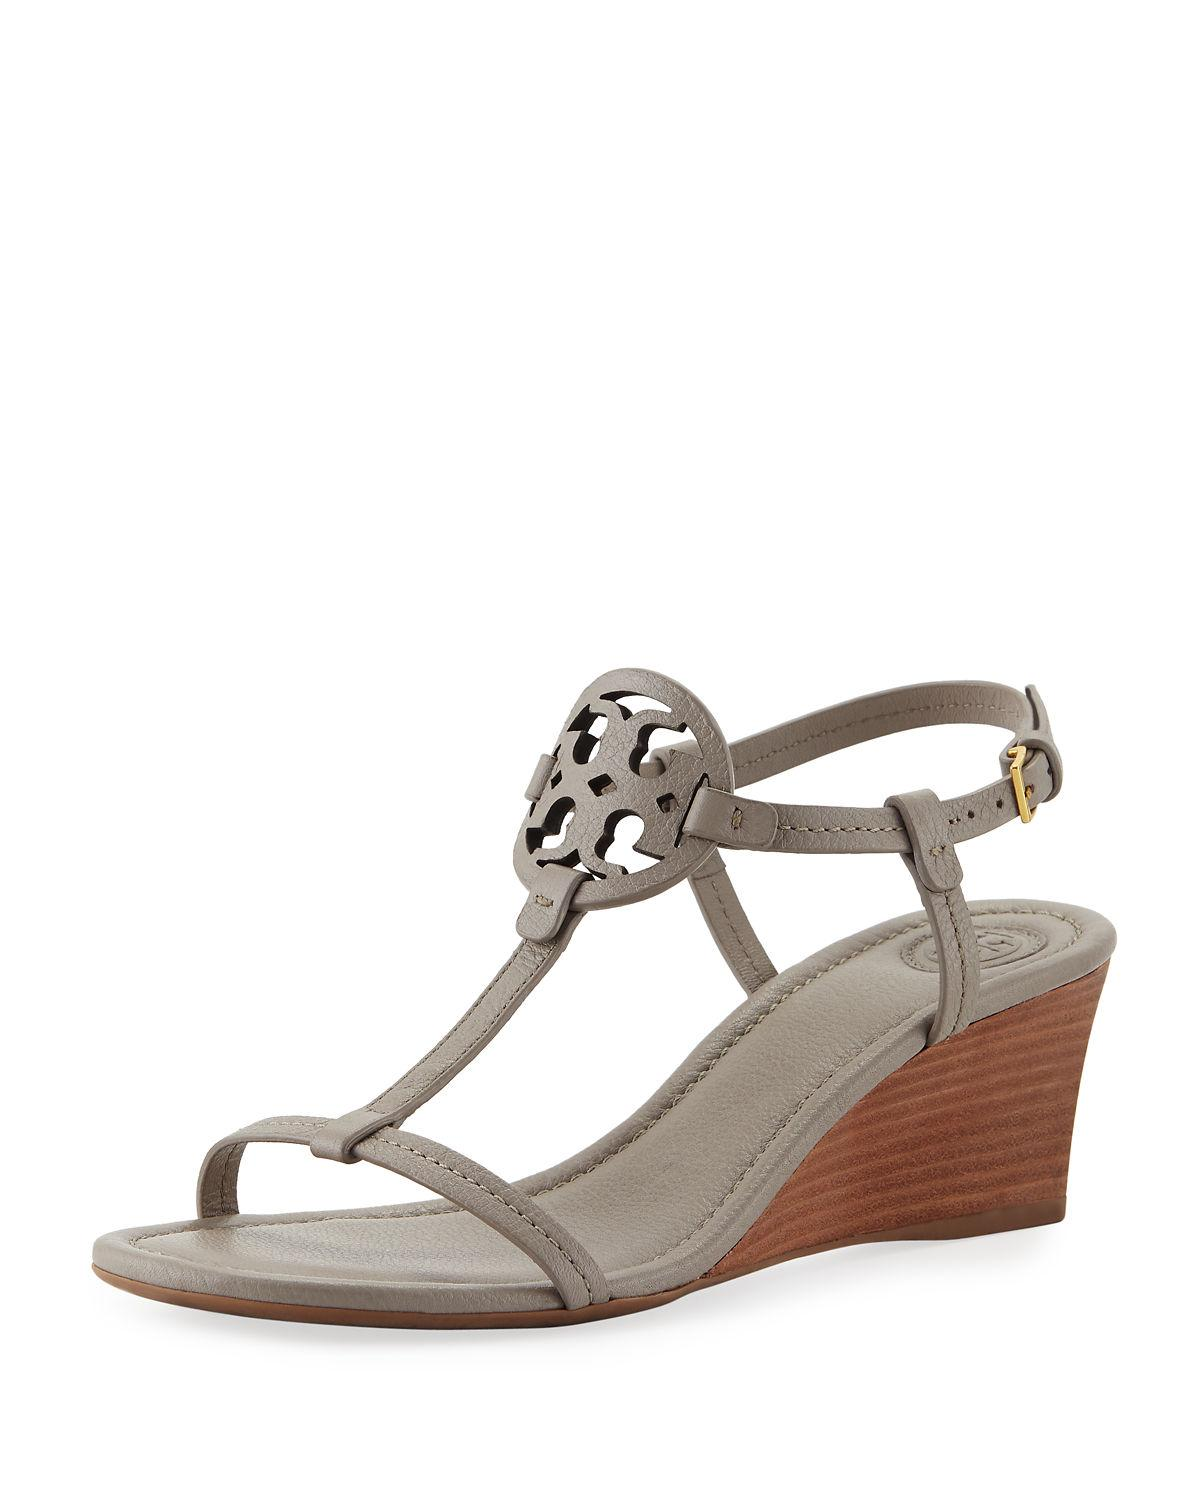 0035ea6ce Tory Burch Miller Sandal Wedges, Tumbled Leather In Gray | ModeSens